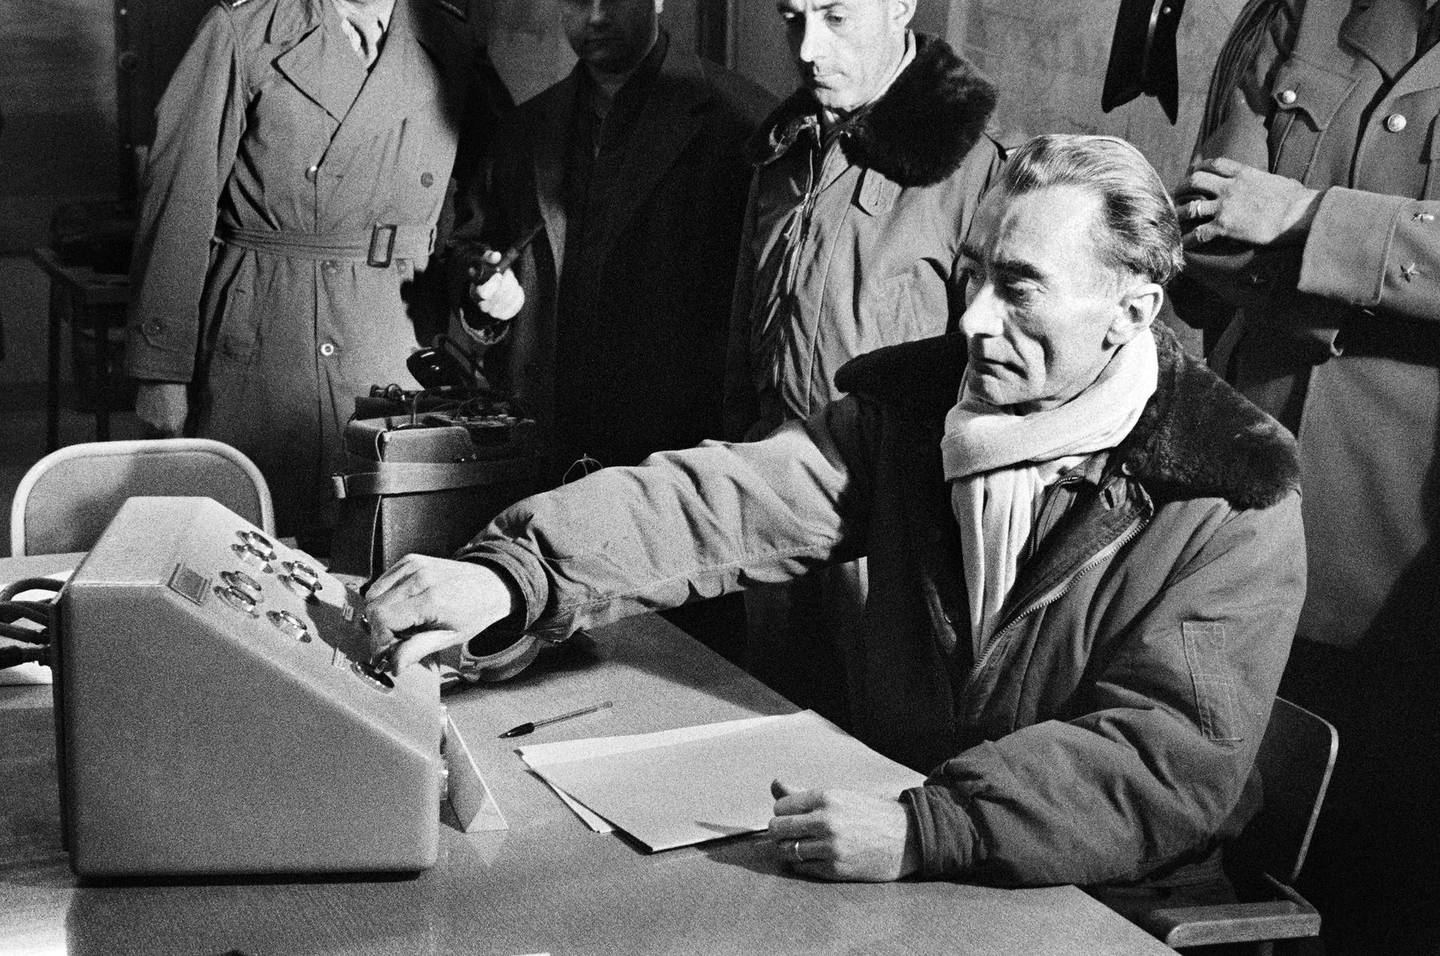 """Photo taken on December 27, 1960 of General Jean Thiry pressing the button which triggers the explosion of the third French atomic bomb on the test polygon at Reggane in the Sahara during the operation called """"Gerboise rouge"""". - General Jean Thiry, director of nuclear experiment centers, during the first French thermonuclear device in the Pacific in 1968, died on December 14 in Paris at the age of 84. AFP PHOTO (Photo by - / AFP)"""